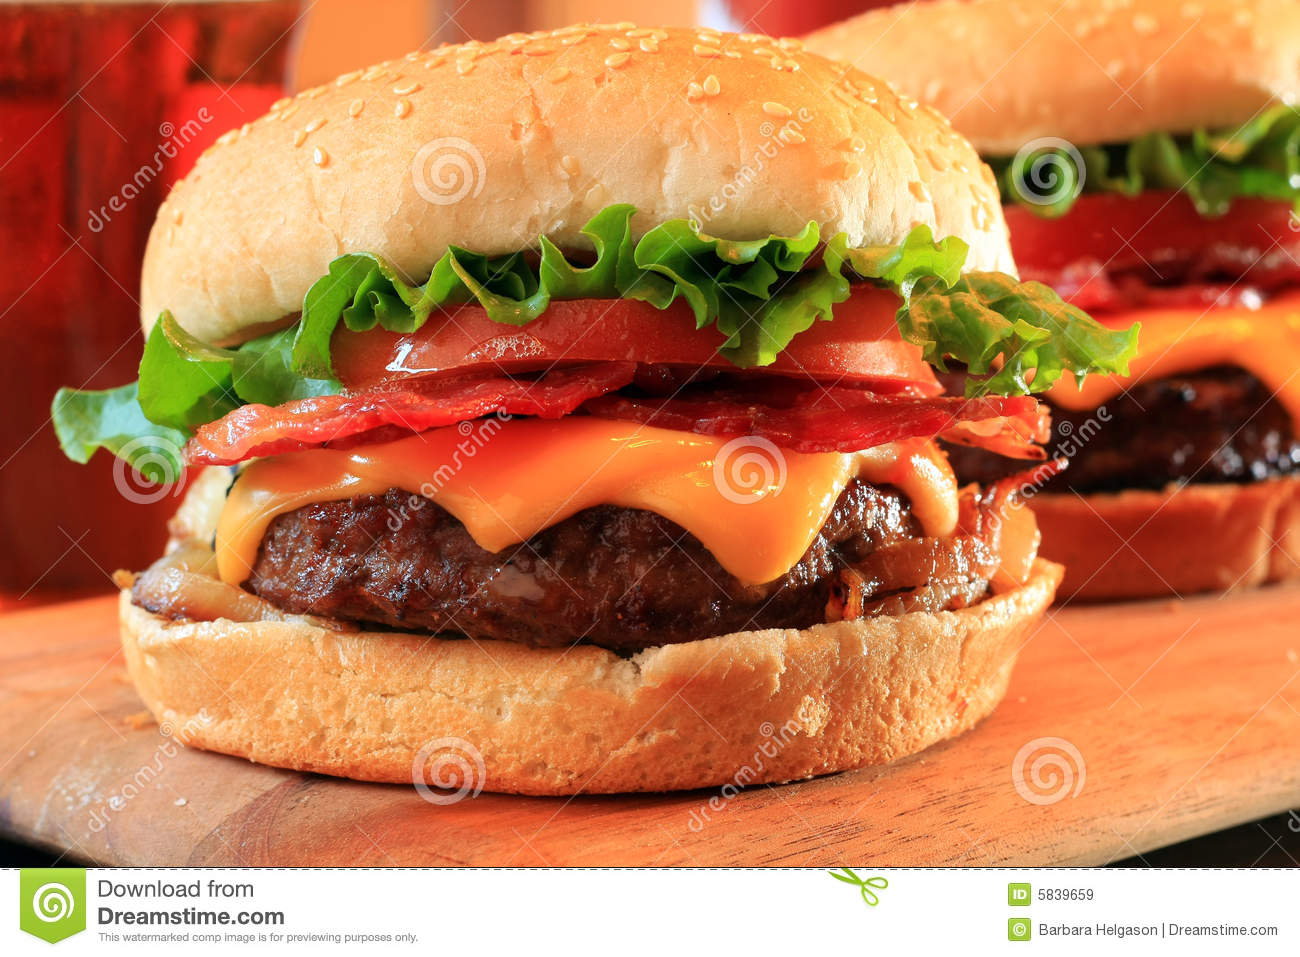 Bacon Cheeseburgers Royalty Free Stock Images - Image: 5839659